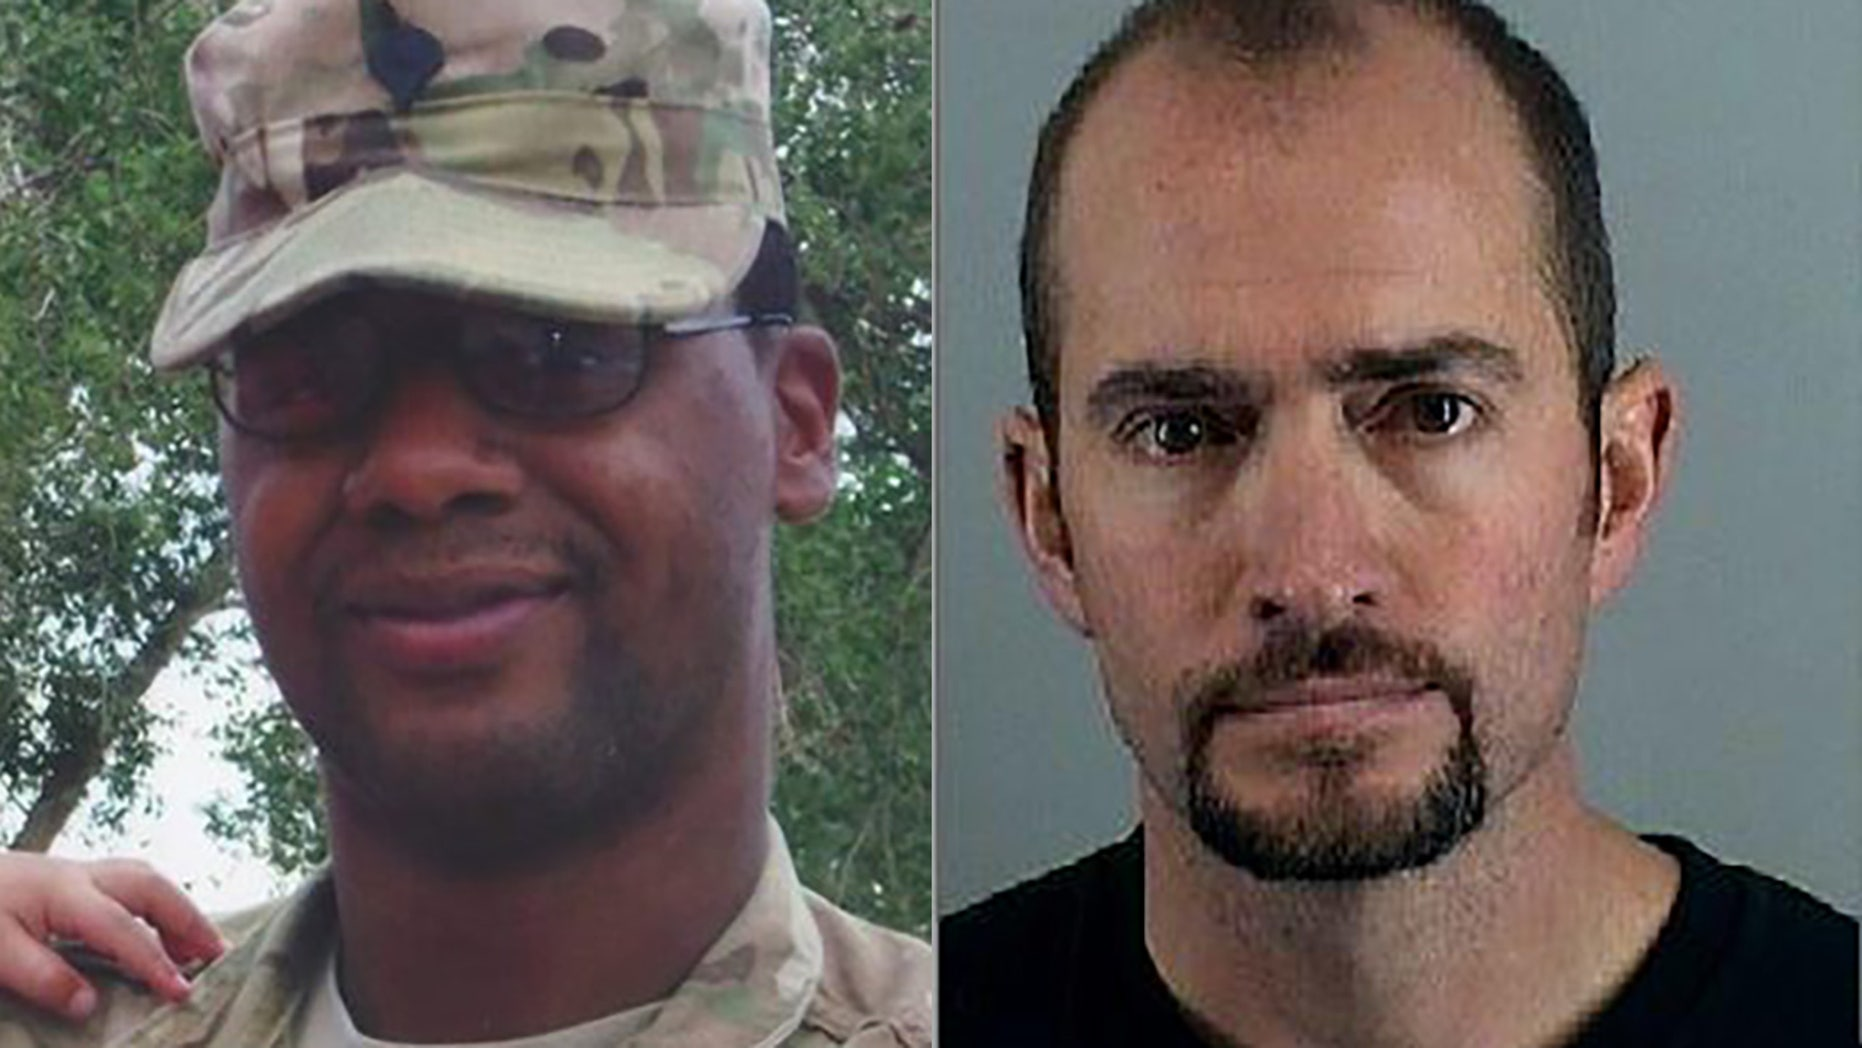 Driver On Third Dui Who Killed Afghanistan Vet Gets 6 Month Jail Term